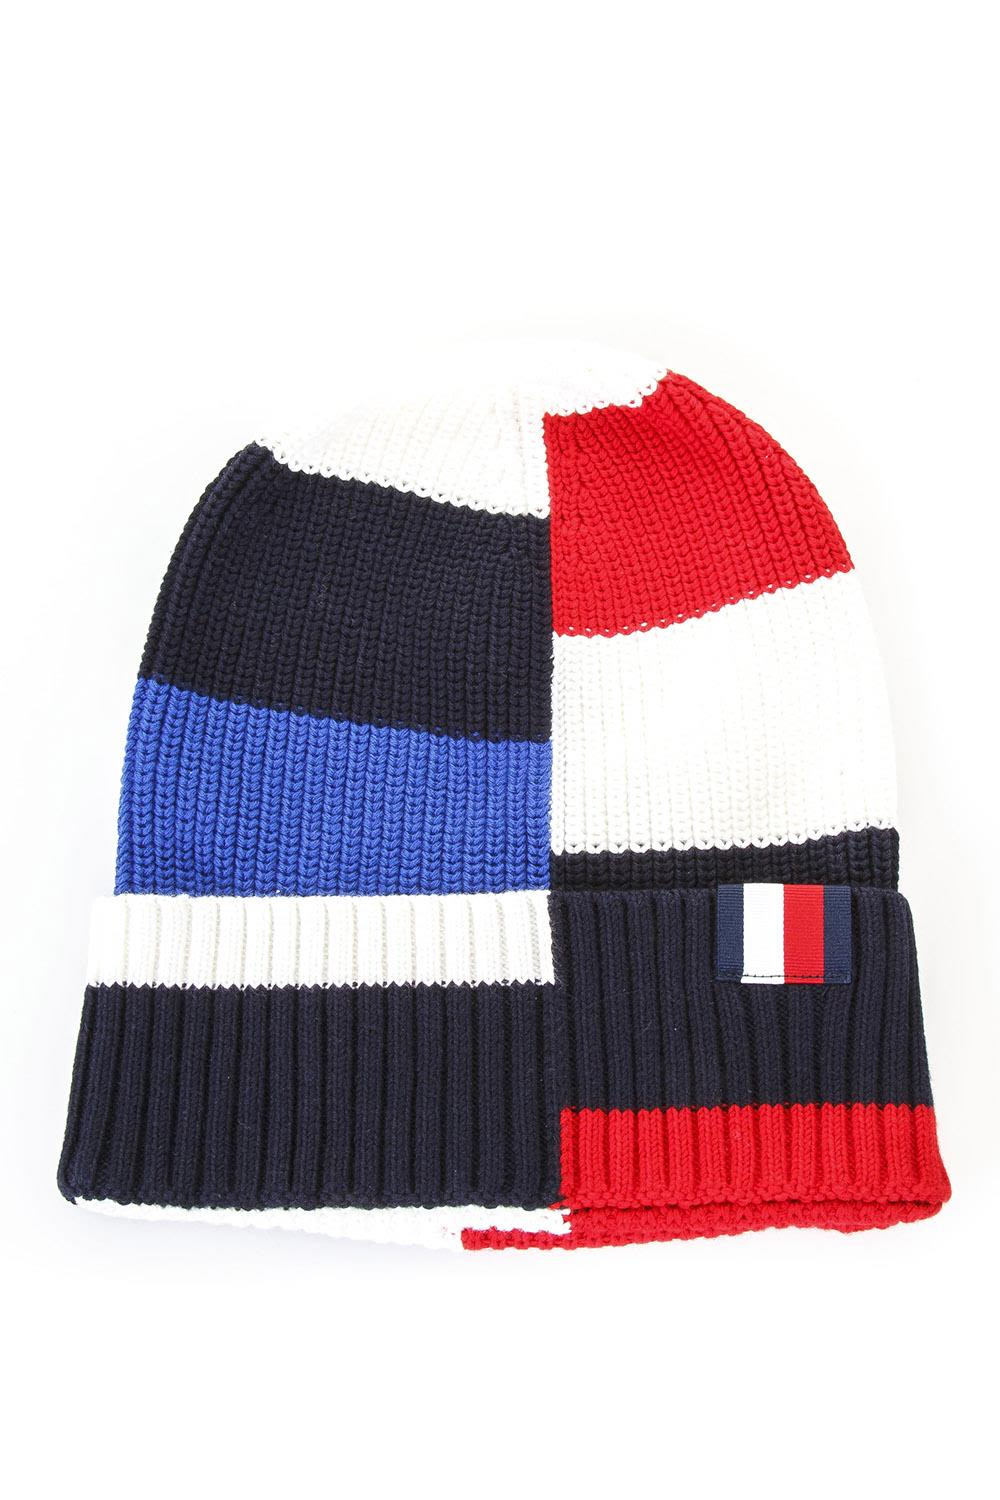 Italist Best Price In The Market For Tommy Hilfiger